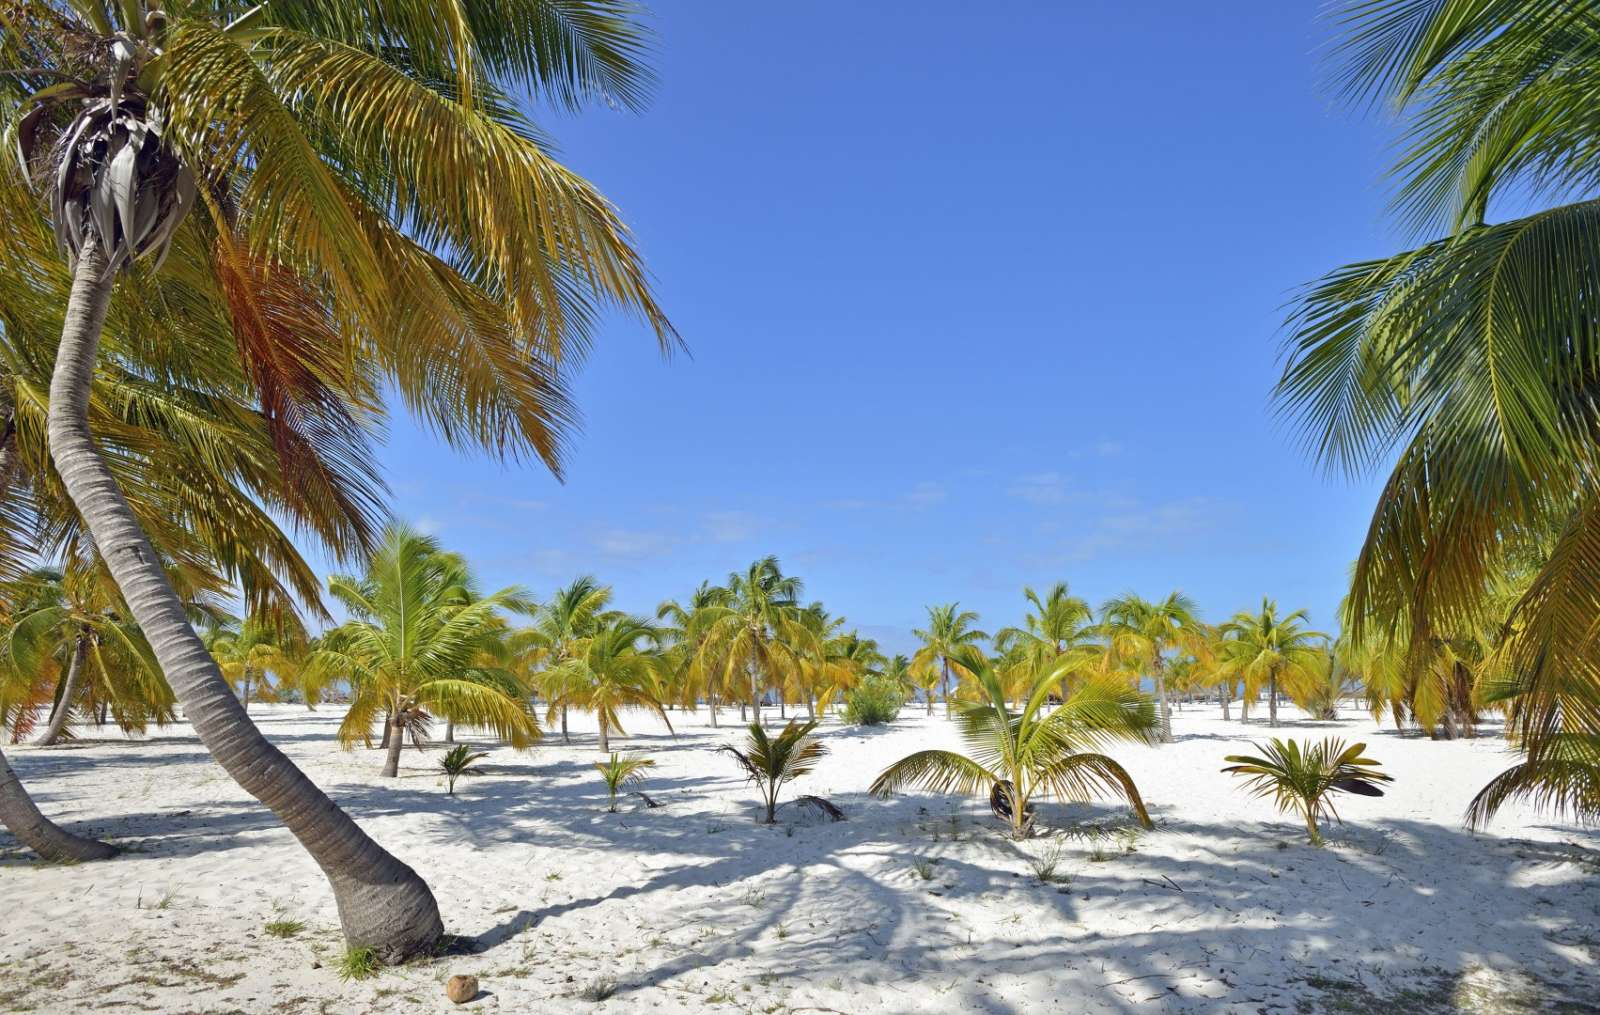 A wide expanse of palm trees on Cayo Largo, Cuba